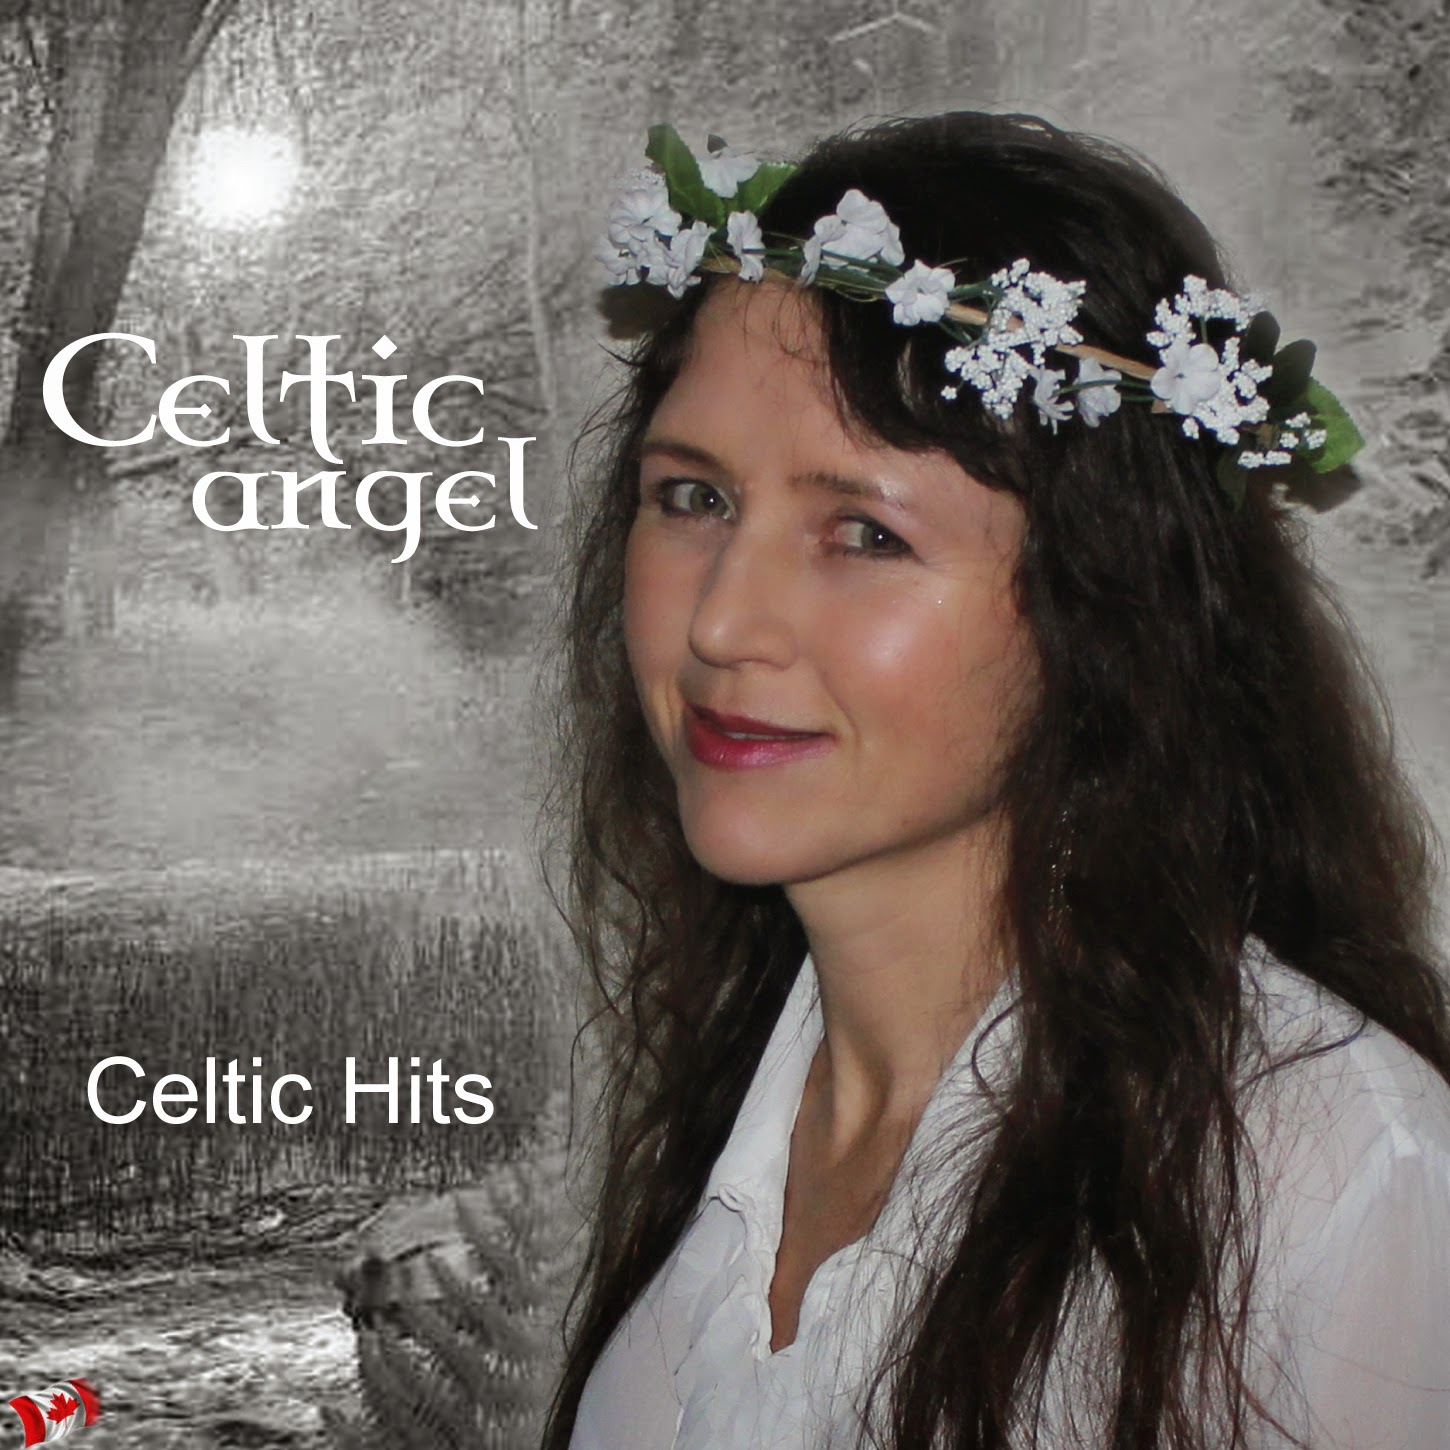 Celtic Hits, celtic Angel Cd on iTunes